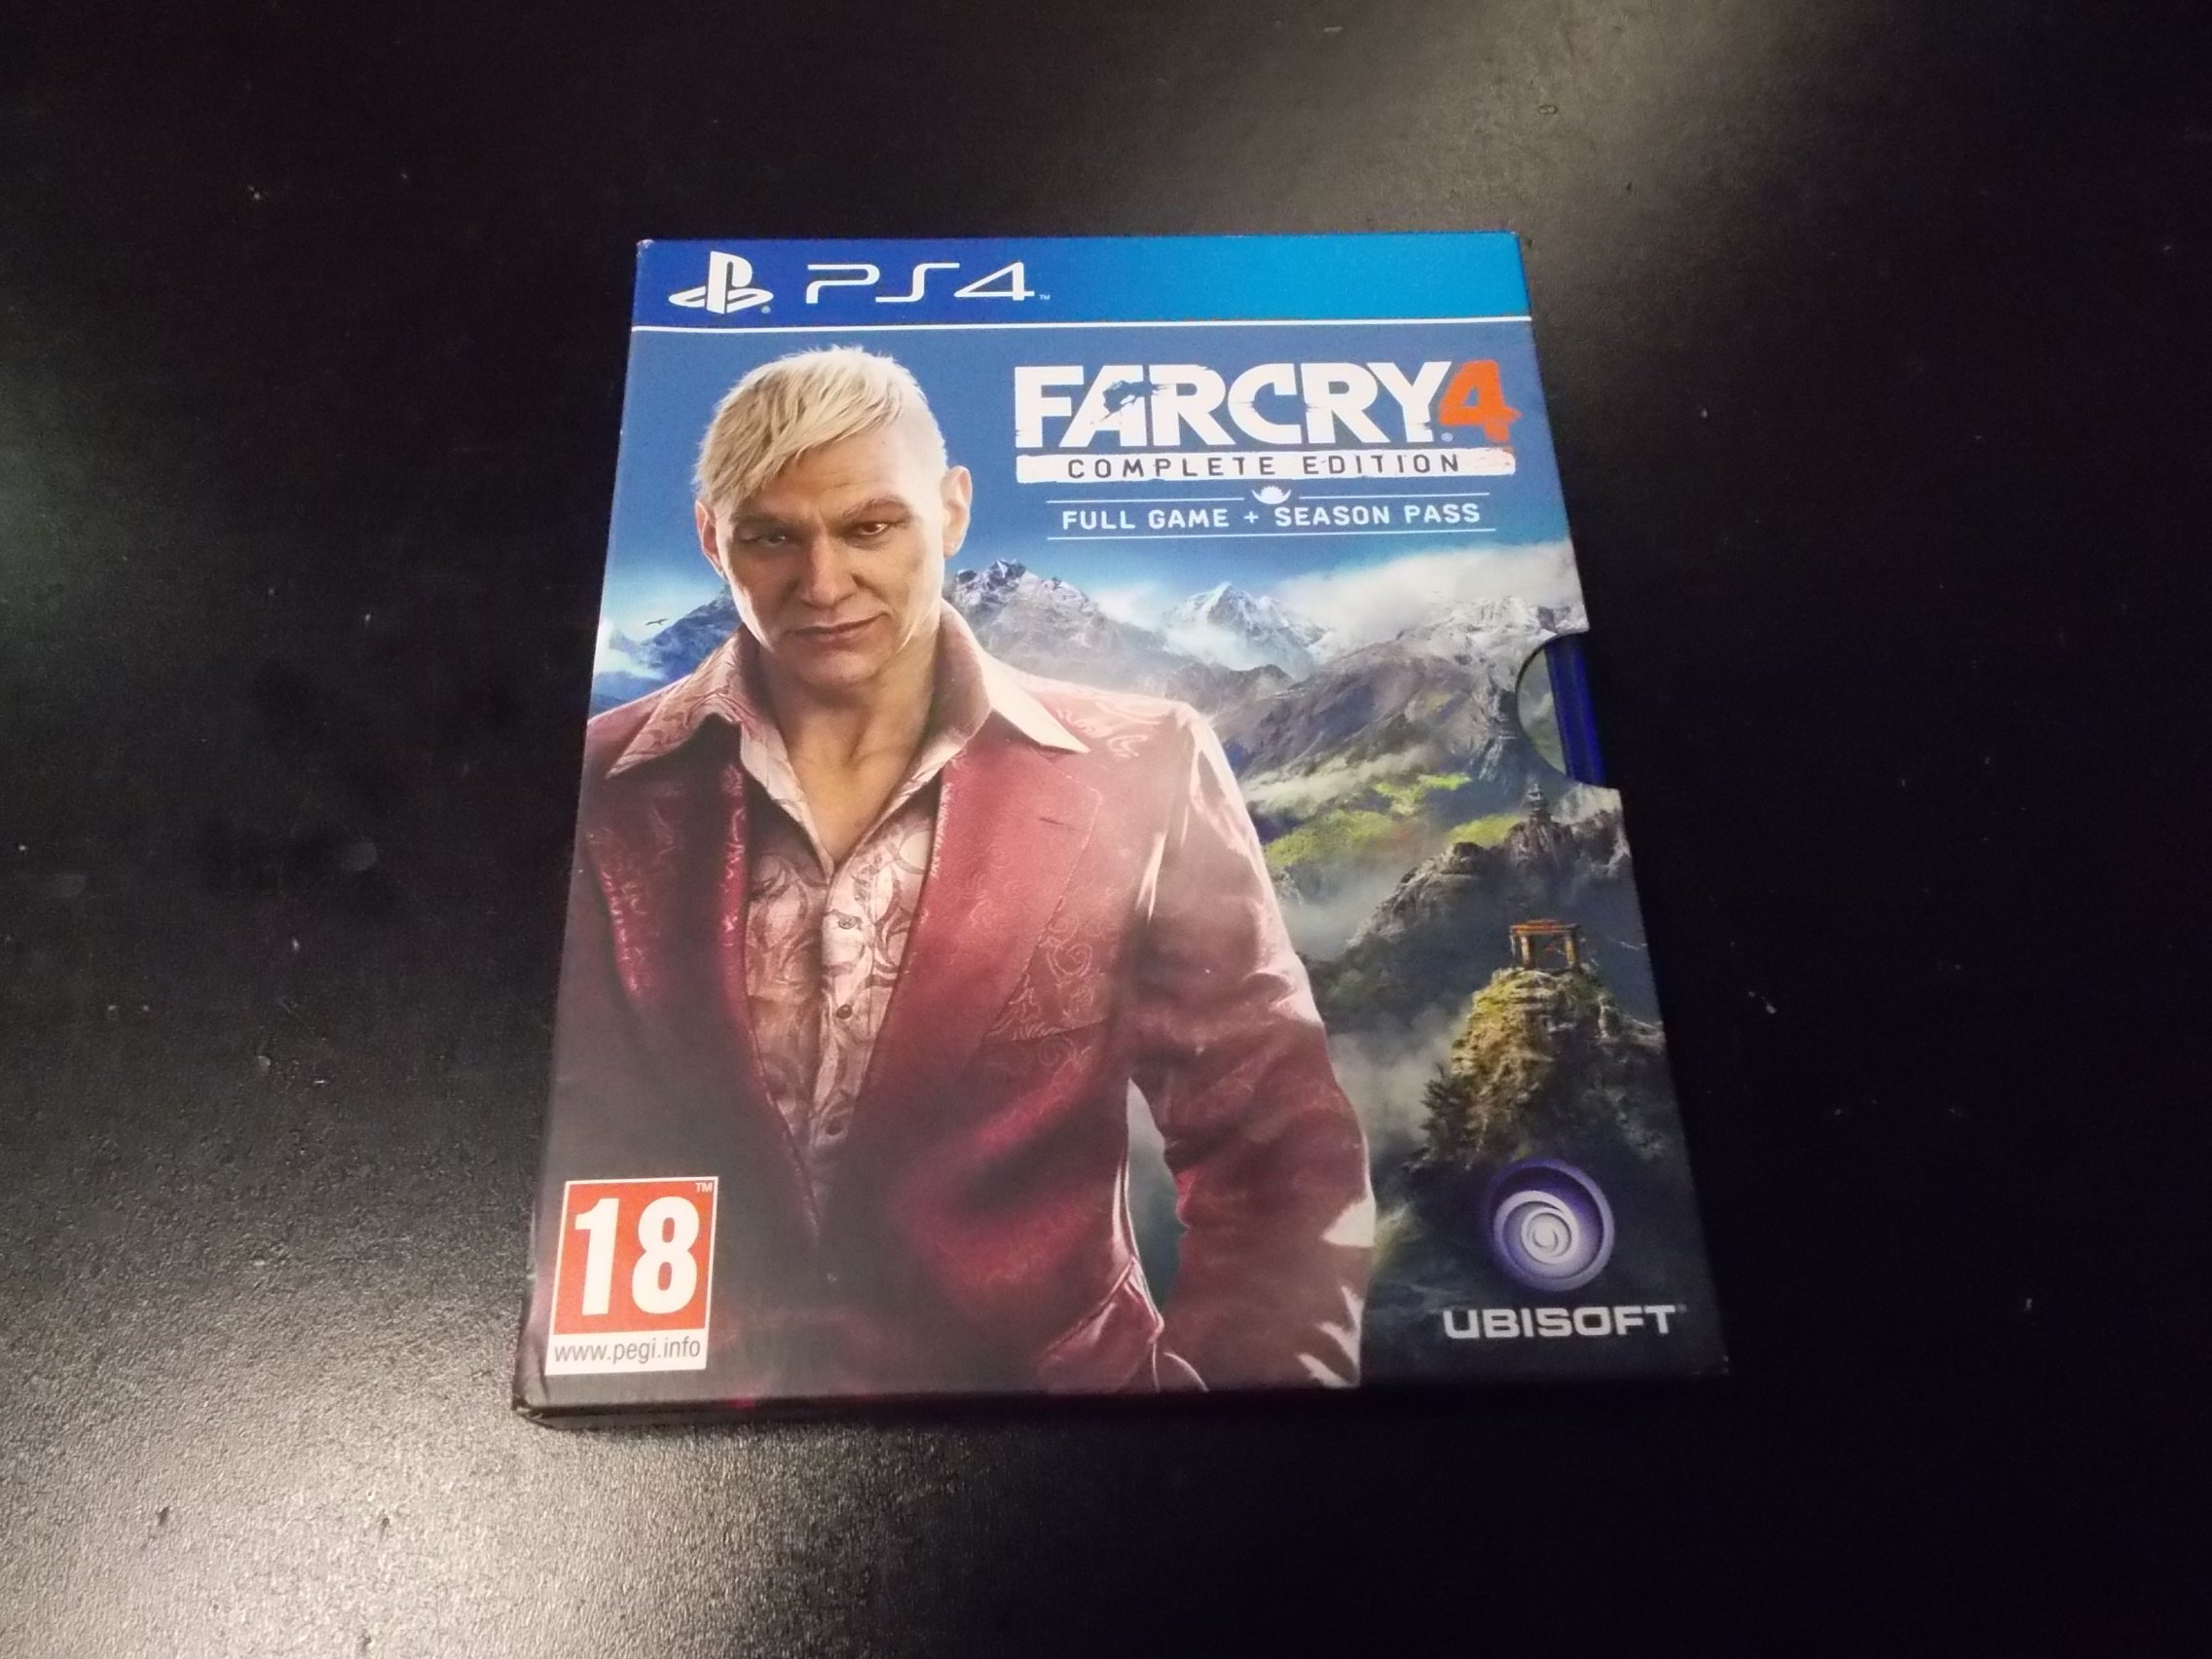 FarCry 4 Far Cry 4 - GRA Ps4 Sklep